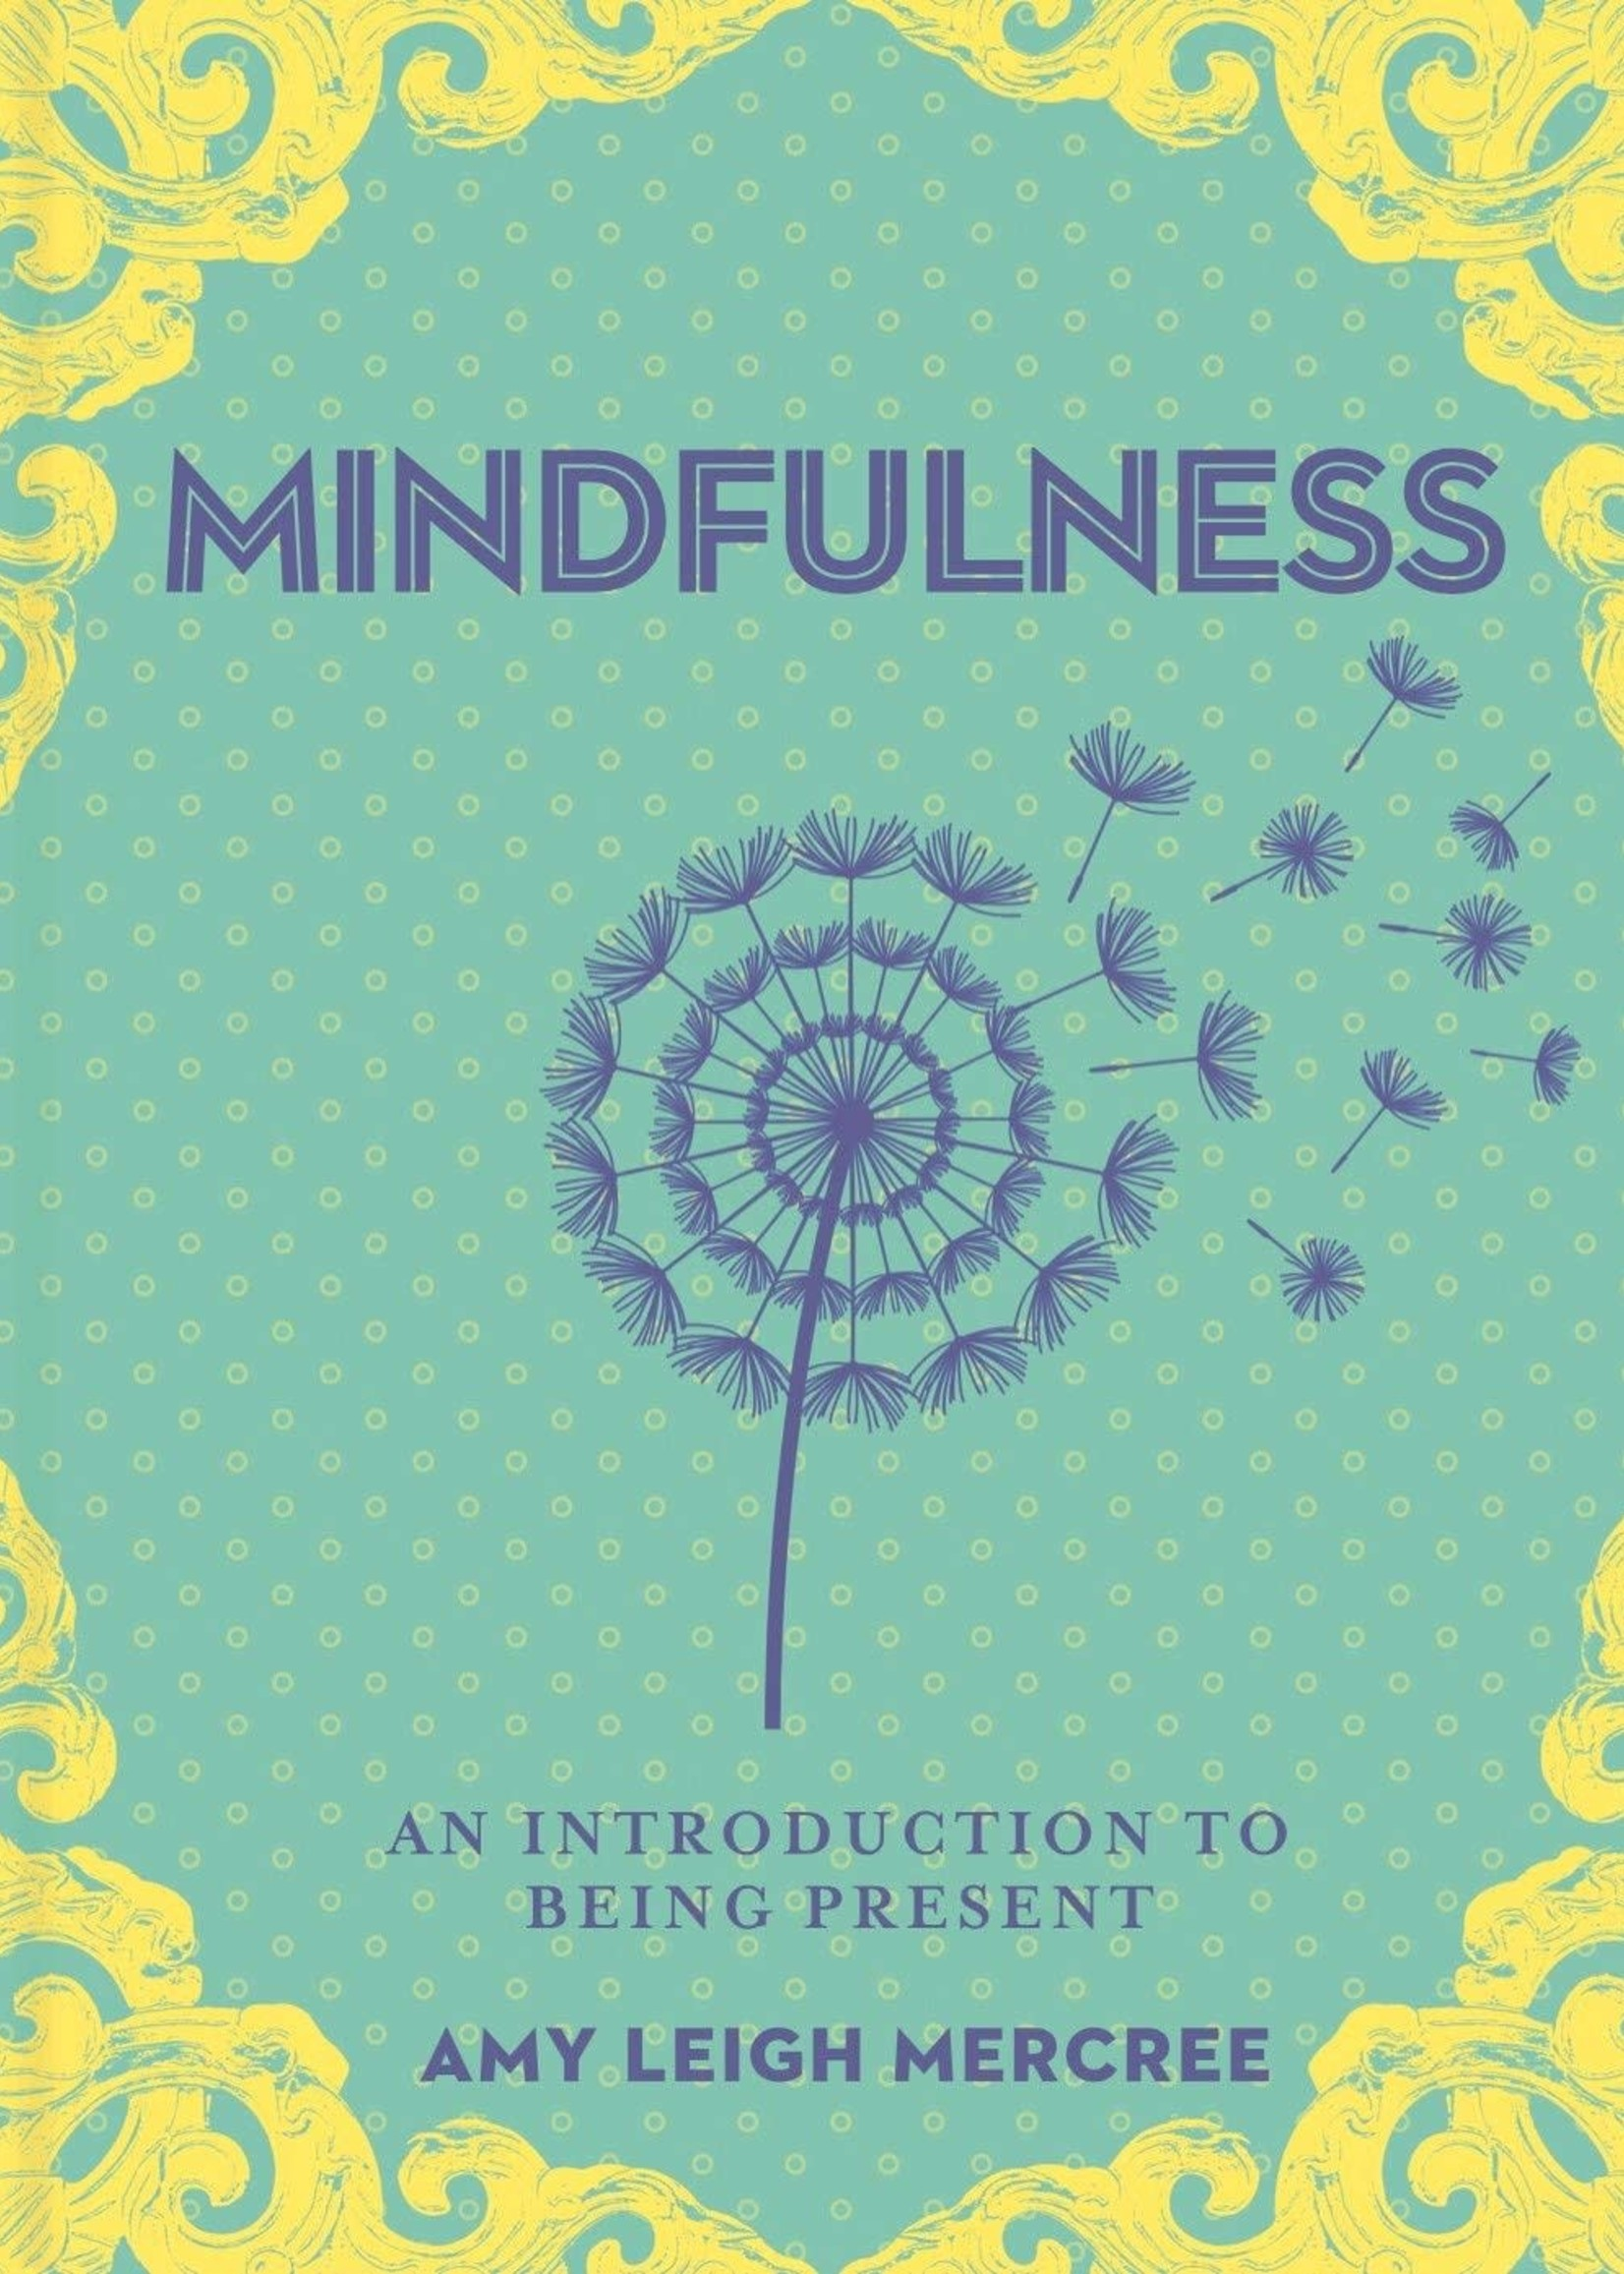 A Little Bit of Mindfullness - An Introduction to Being Present